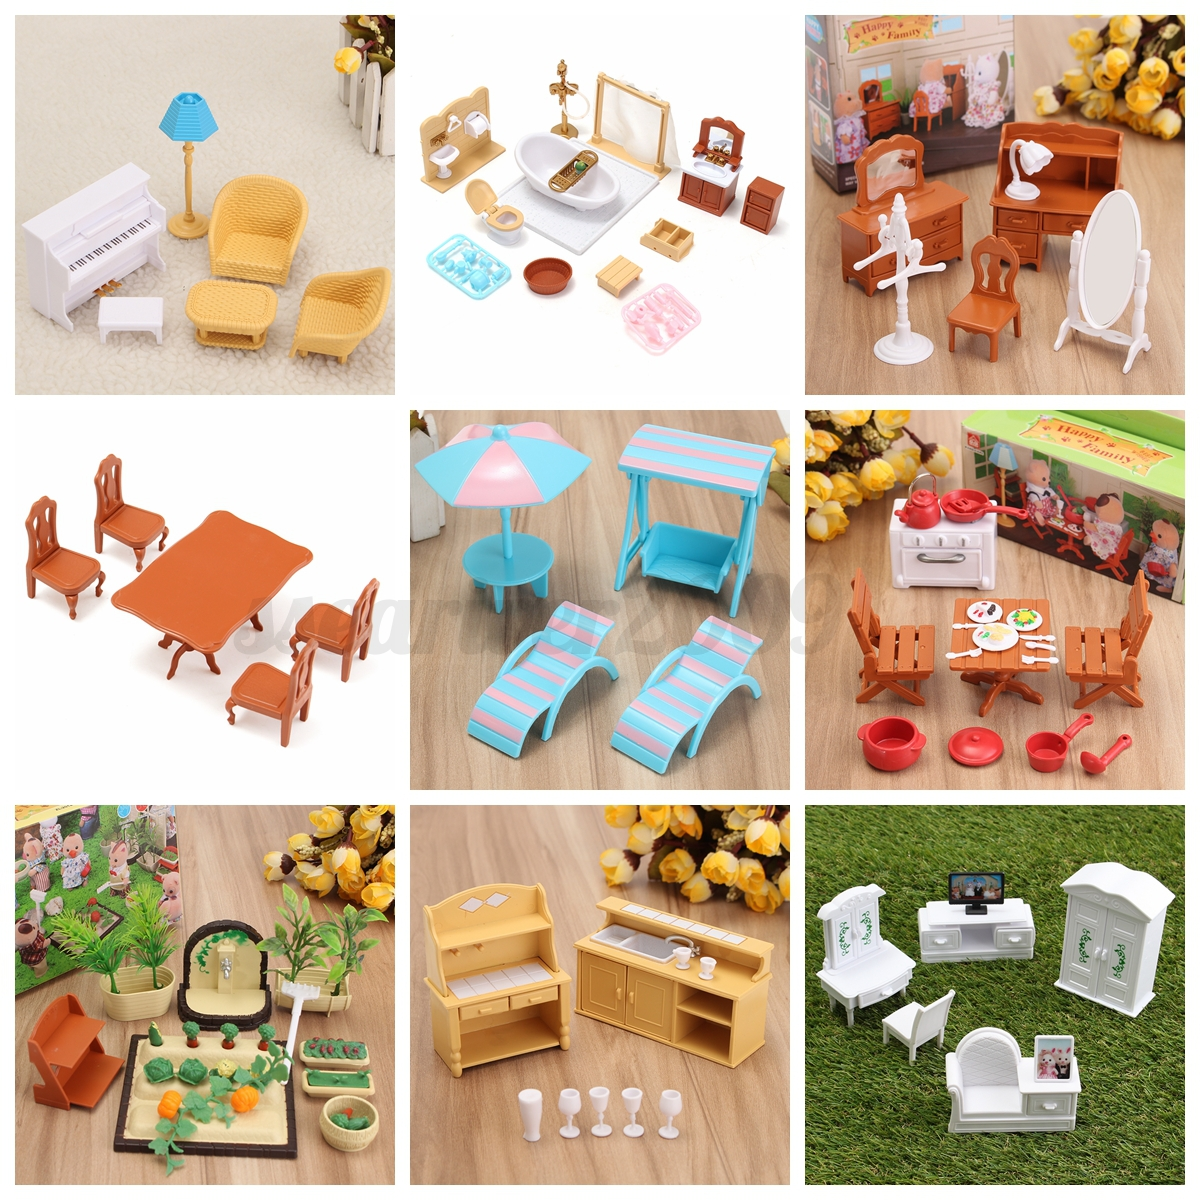 Kaka Pvc Kitchen Furniture: 1/12 Dollhouse Miniature Furniture Plastic Chair Table